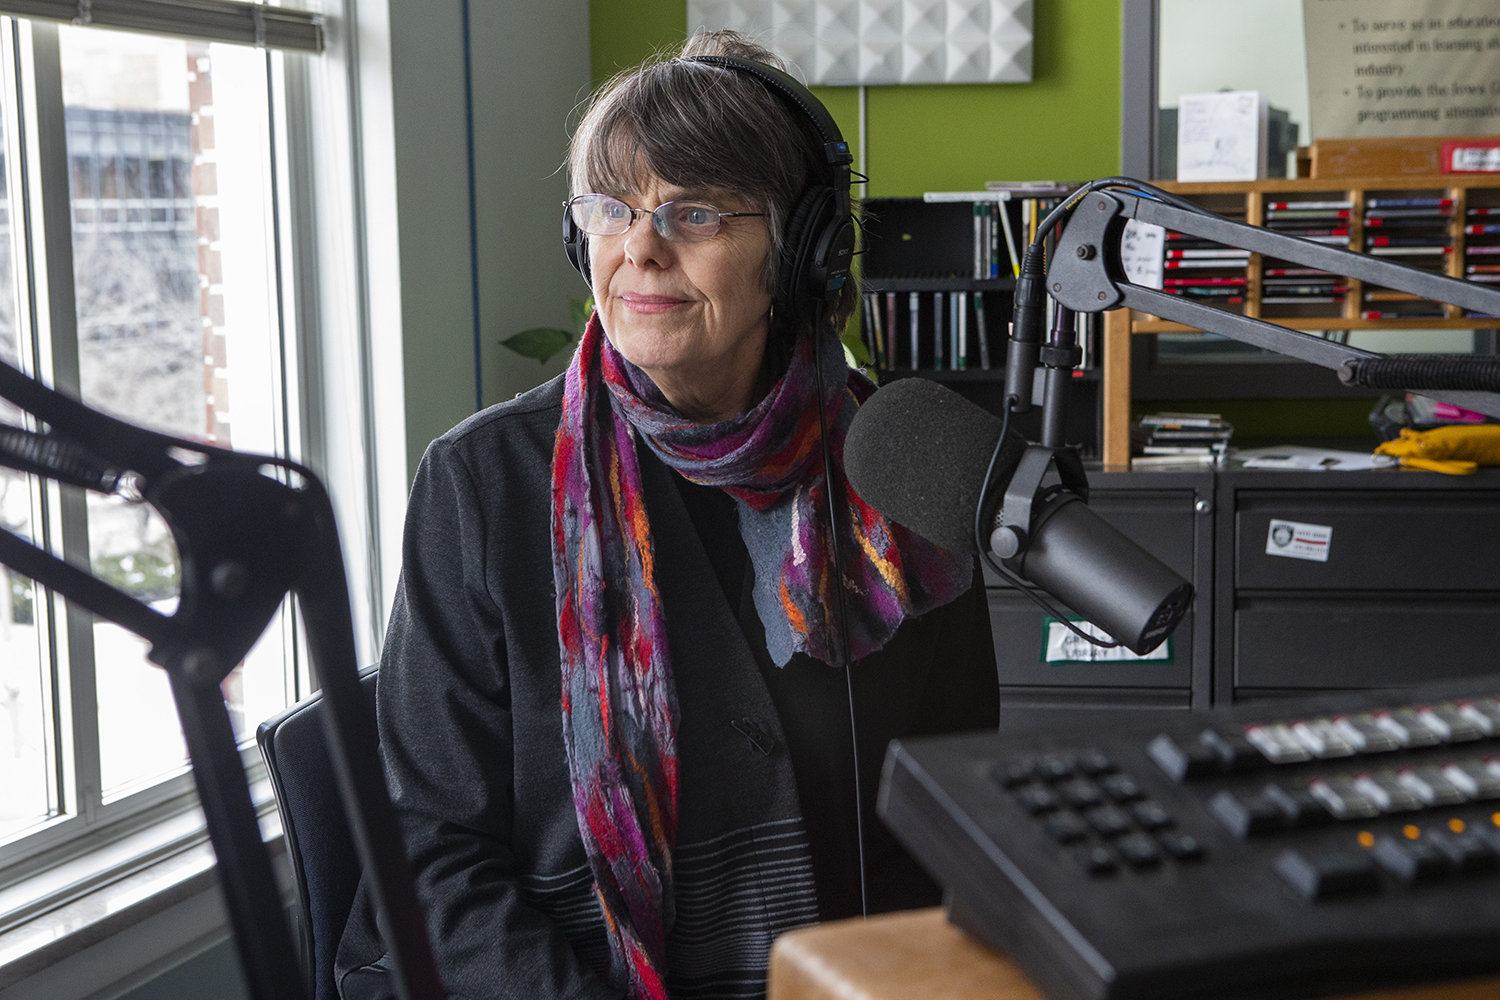 Mary Beth Tinker listens to a question during an interview at the KRUI studio on Tuesday, February 26, 2019. Mary Beth and John Tinker wore black armbands to school in protest of the Vietnam War in the 1960s, leading to the Tinker vs. Des Moines court case in 1969.